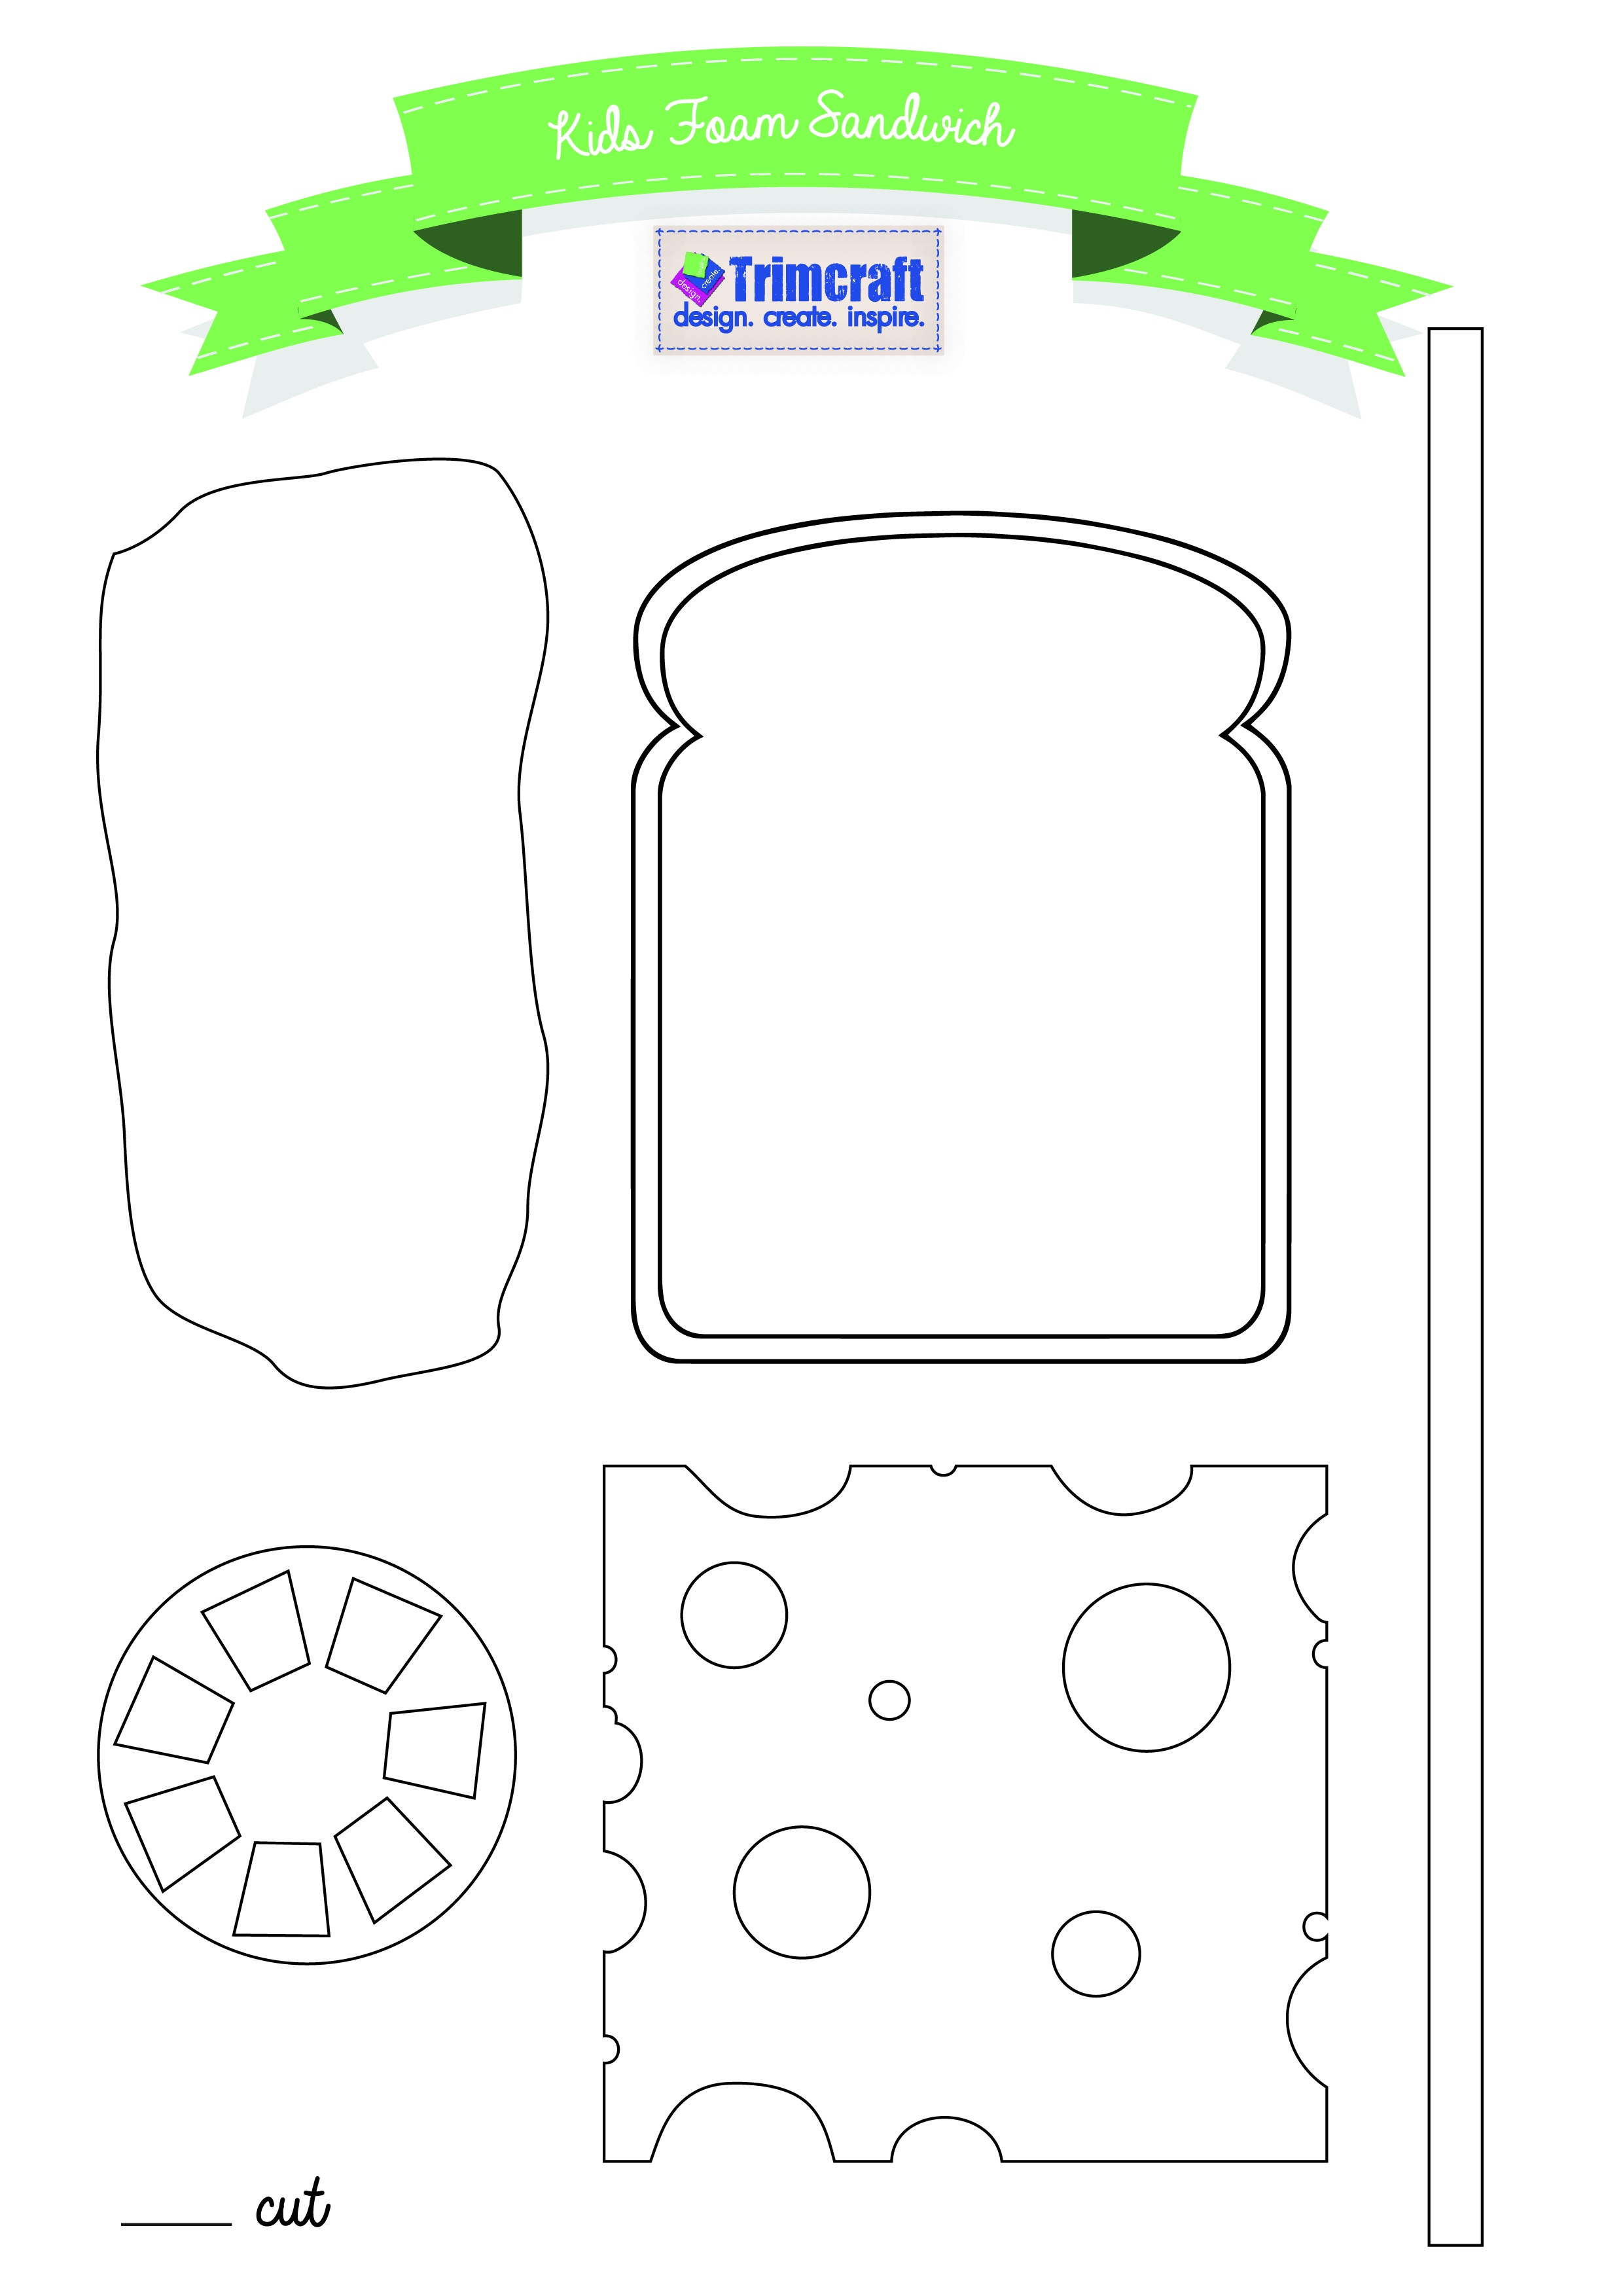 Free Printable Craft Templates | The Craft Blog - Free Printable 3D Letters